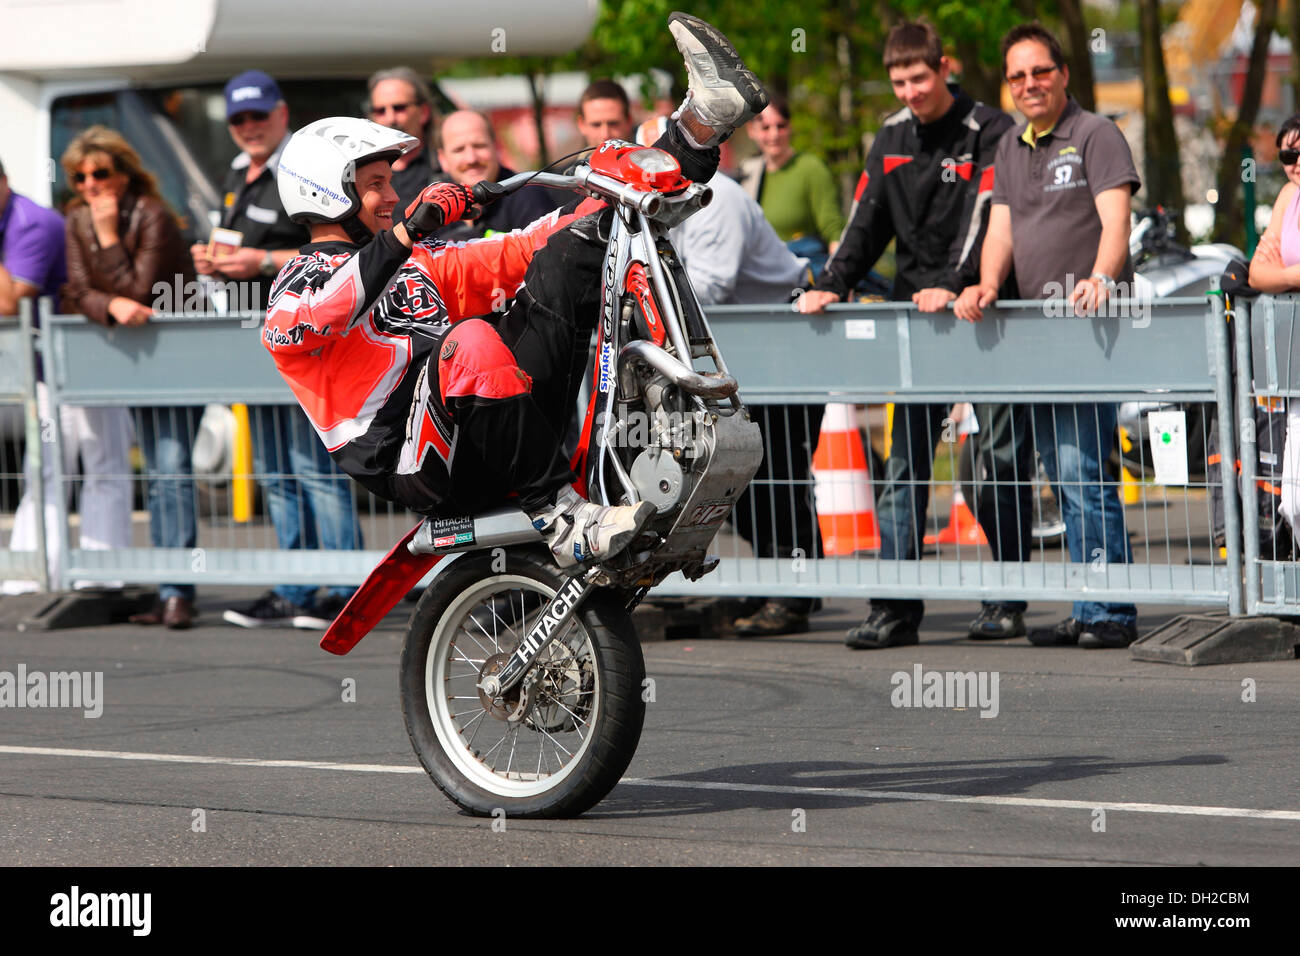 Stuntman Mike Auffenberg driving a trial motorcycle without a front wheel, Koblenz, Rhineland-Palatinate - Stock Image